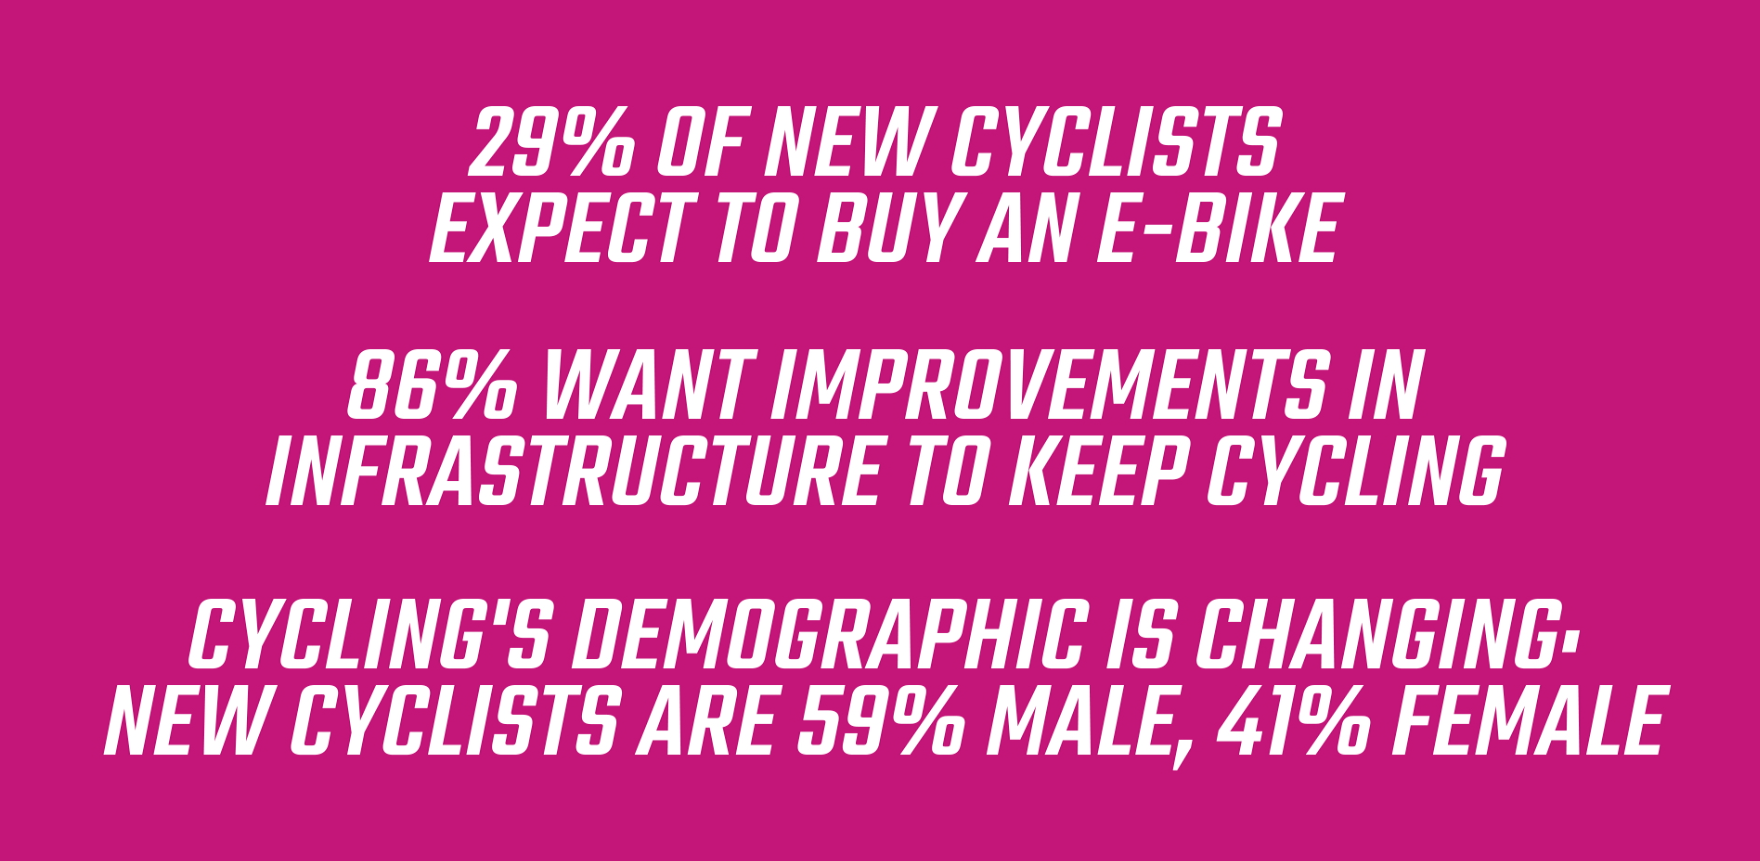 Update from the #BikeIsBest campaign, supported by Green Commute Initiative